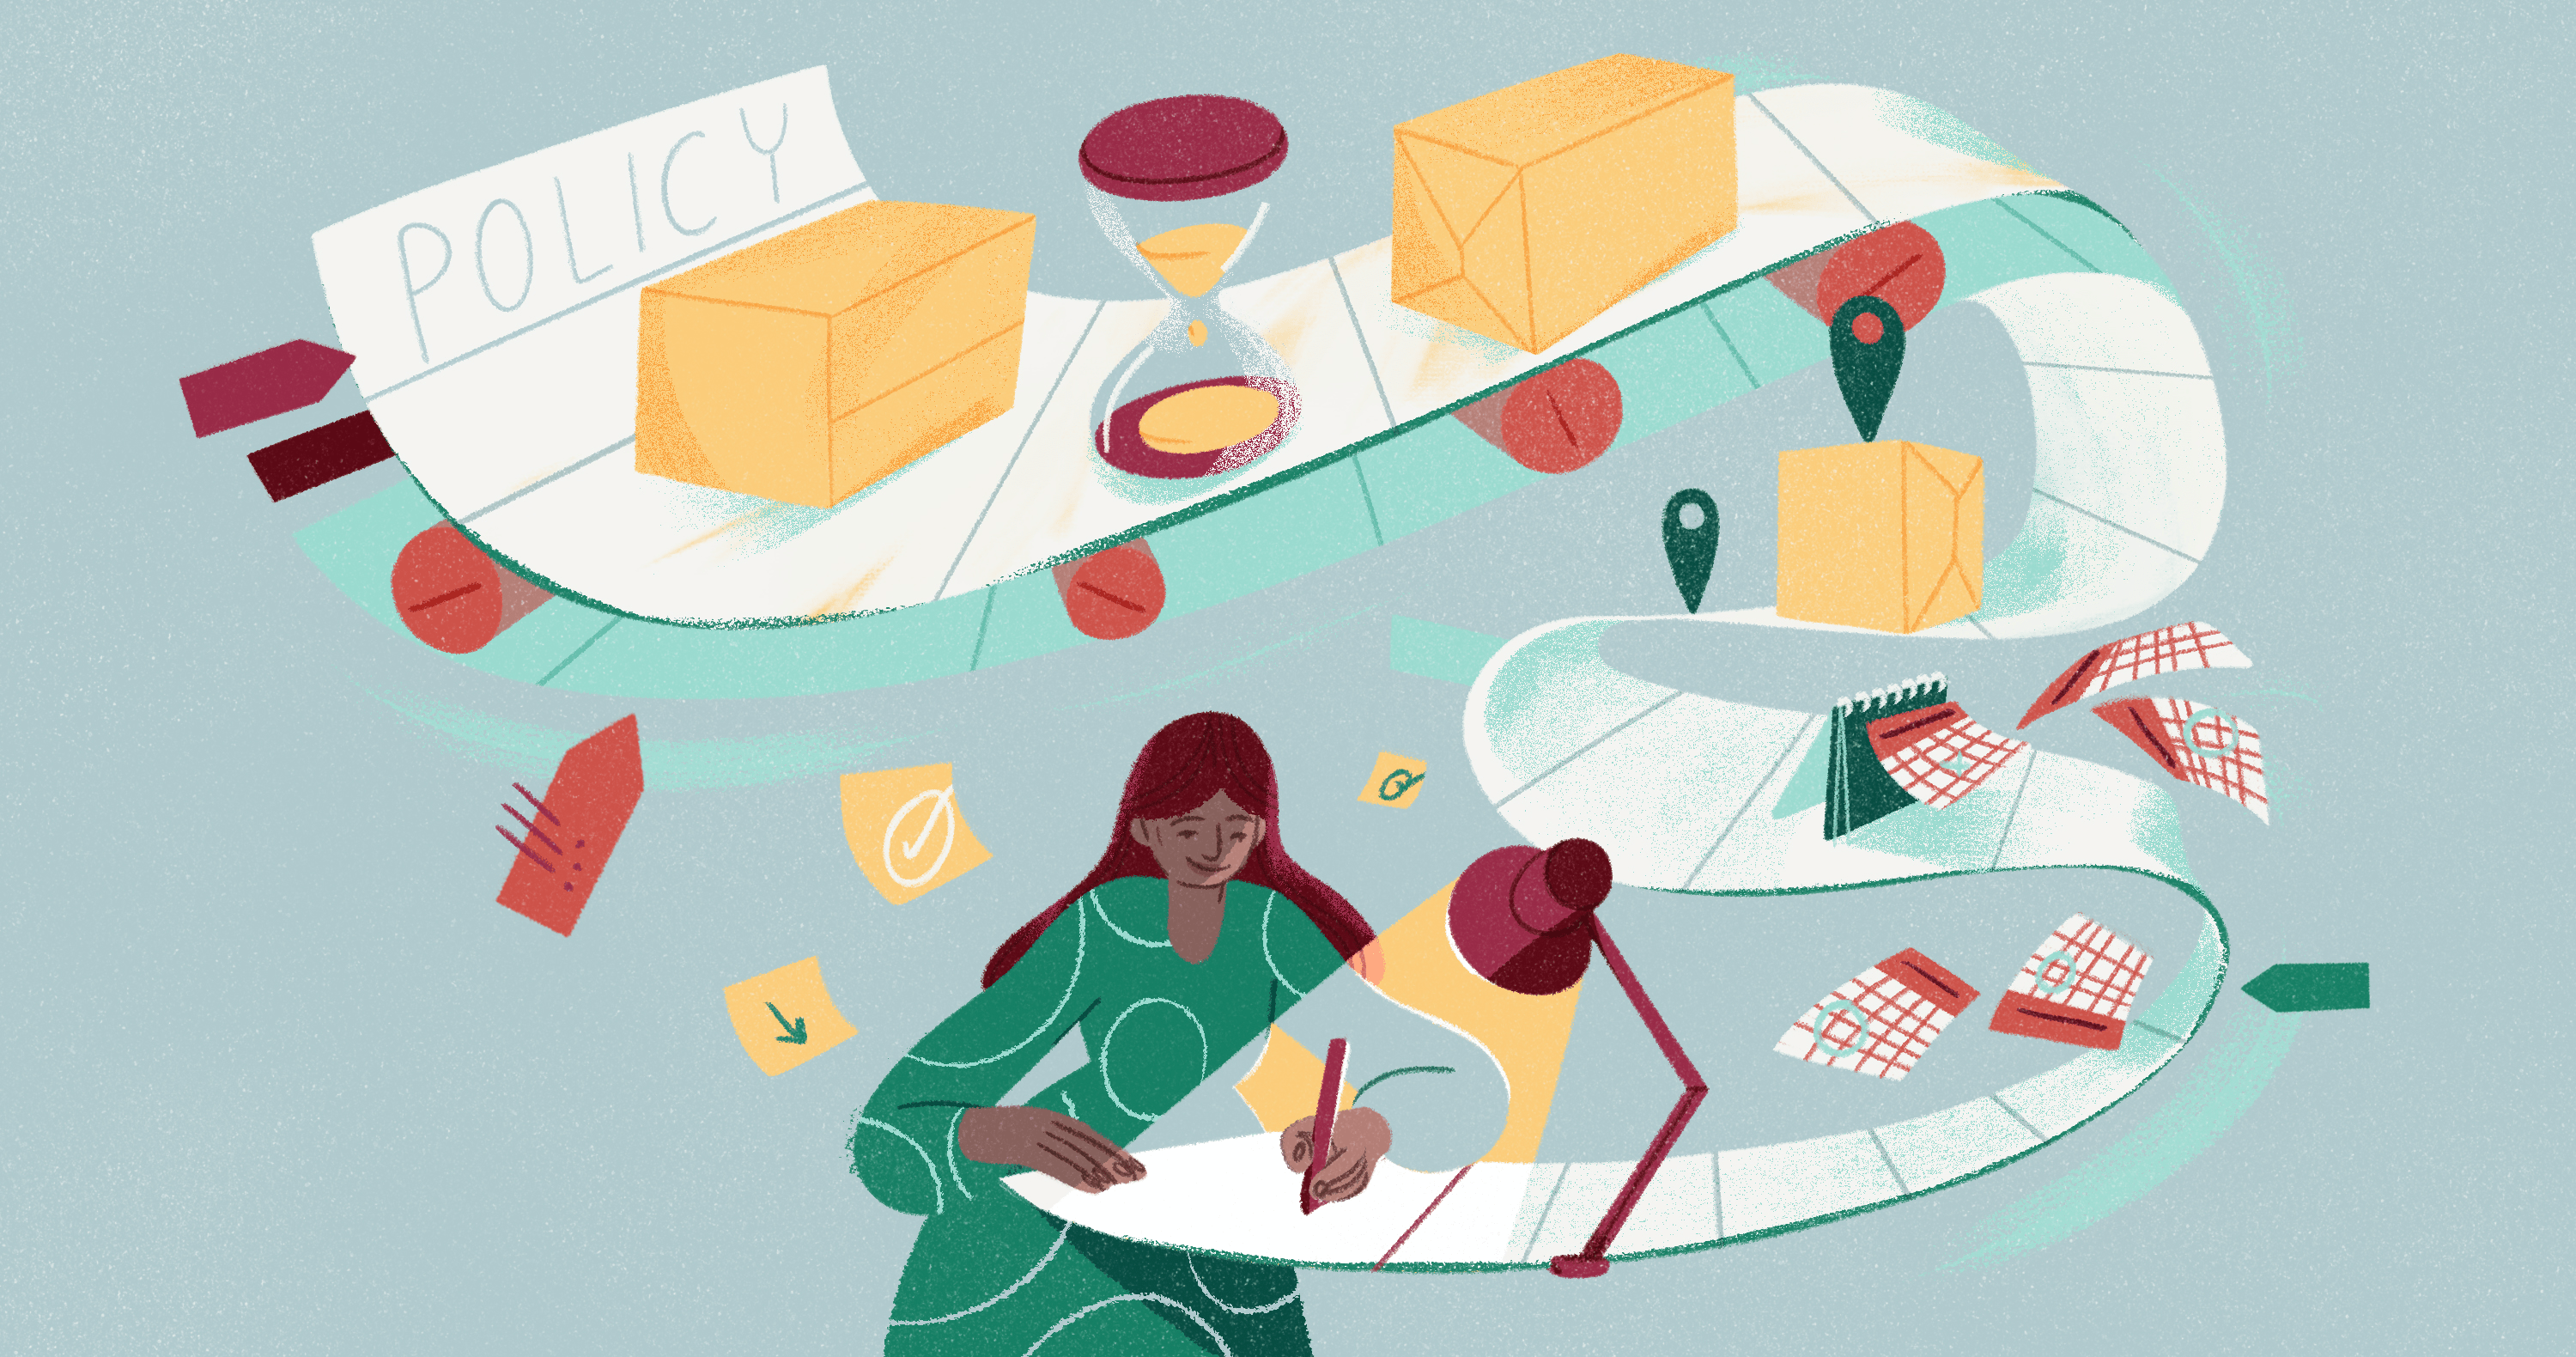 illustration depicting a woman writing a shipping policy for her business with the page flowing with the various considerations she needs to cover